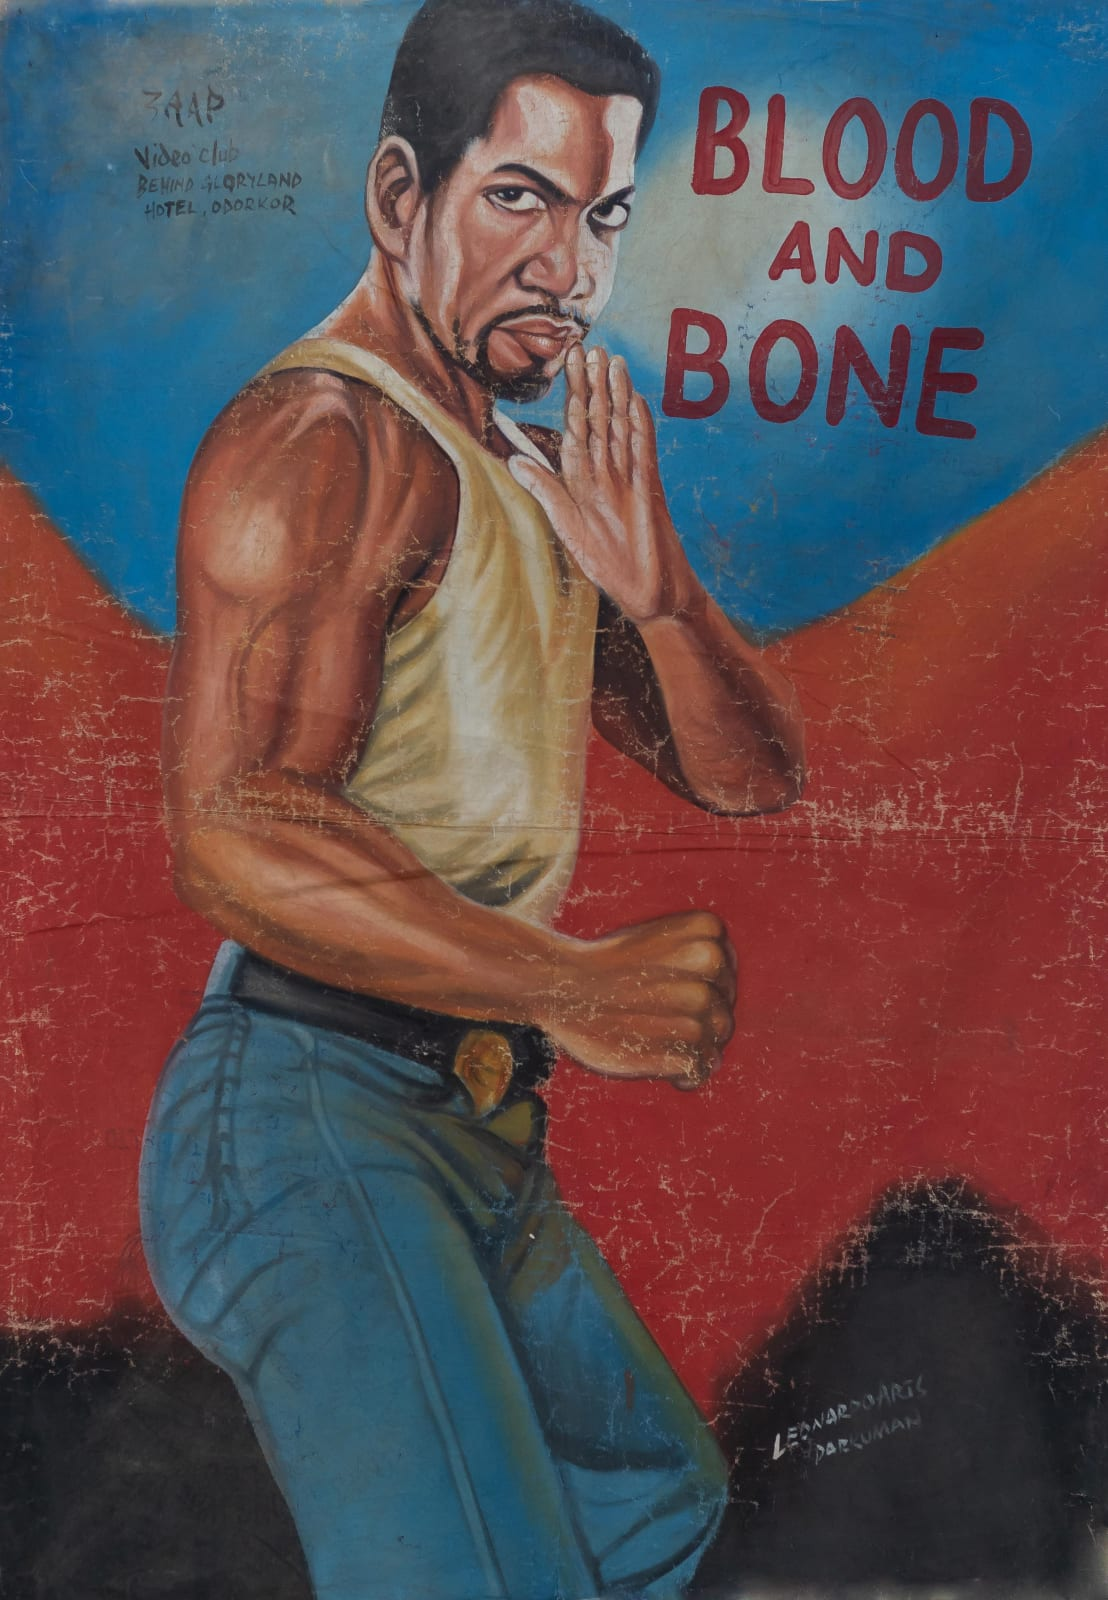 Blood and Bone 151 x 104 cm